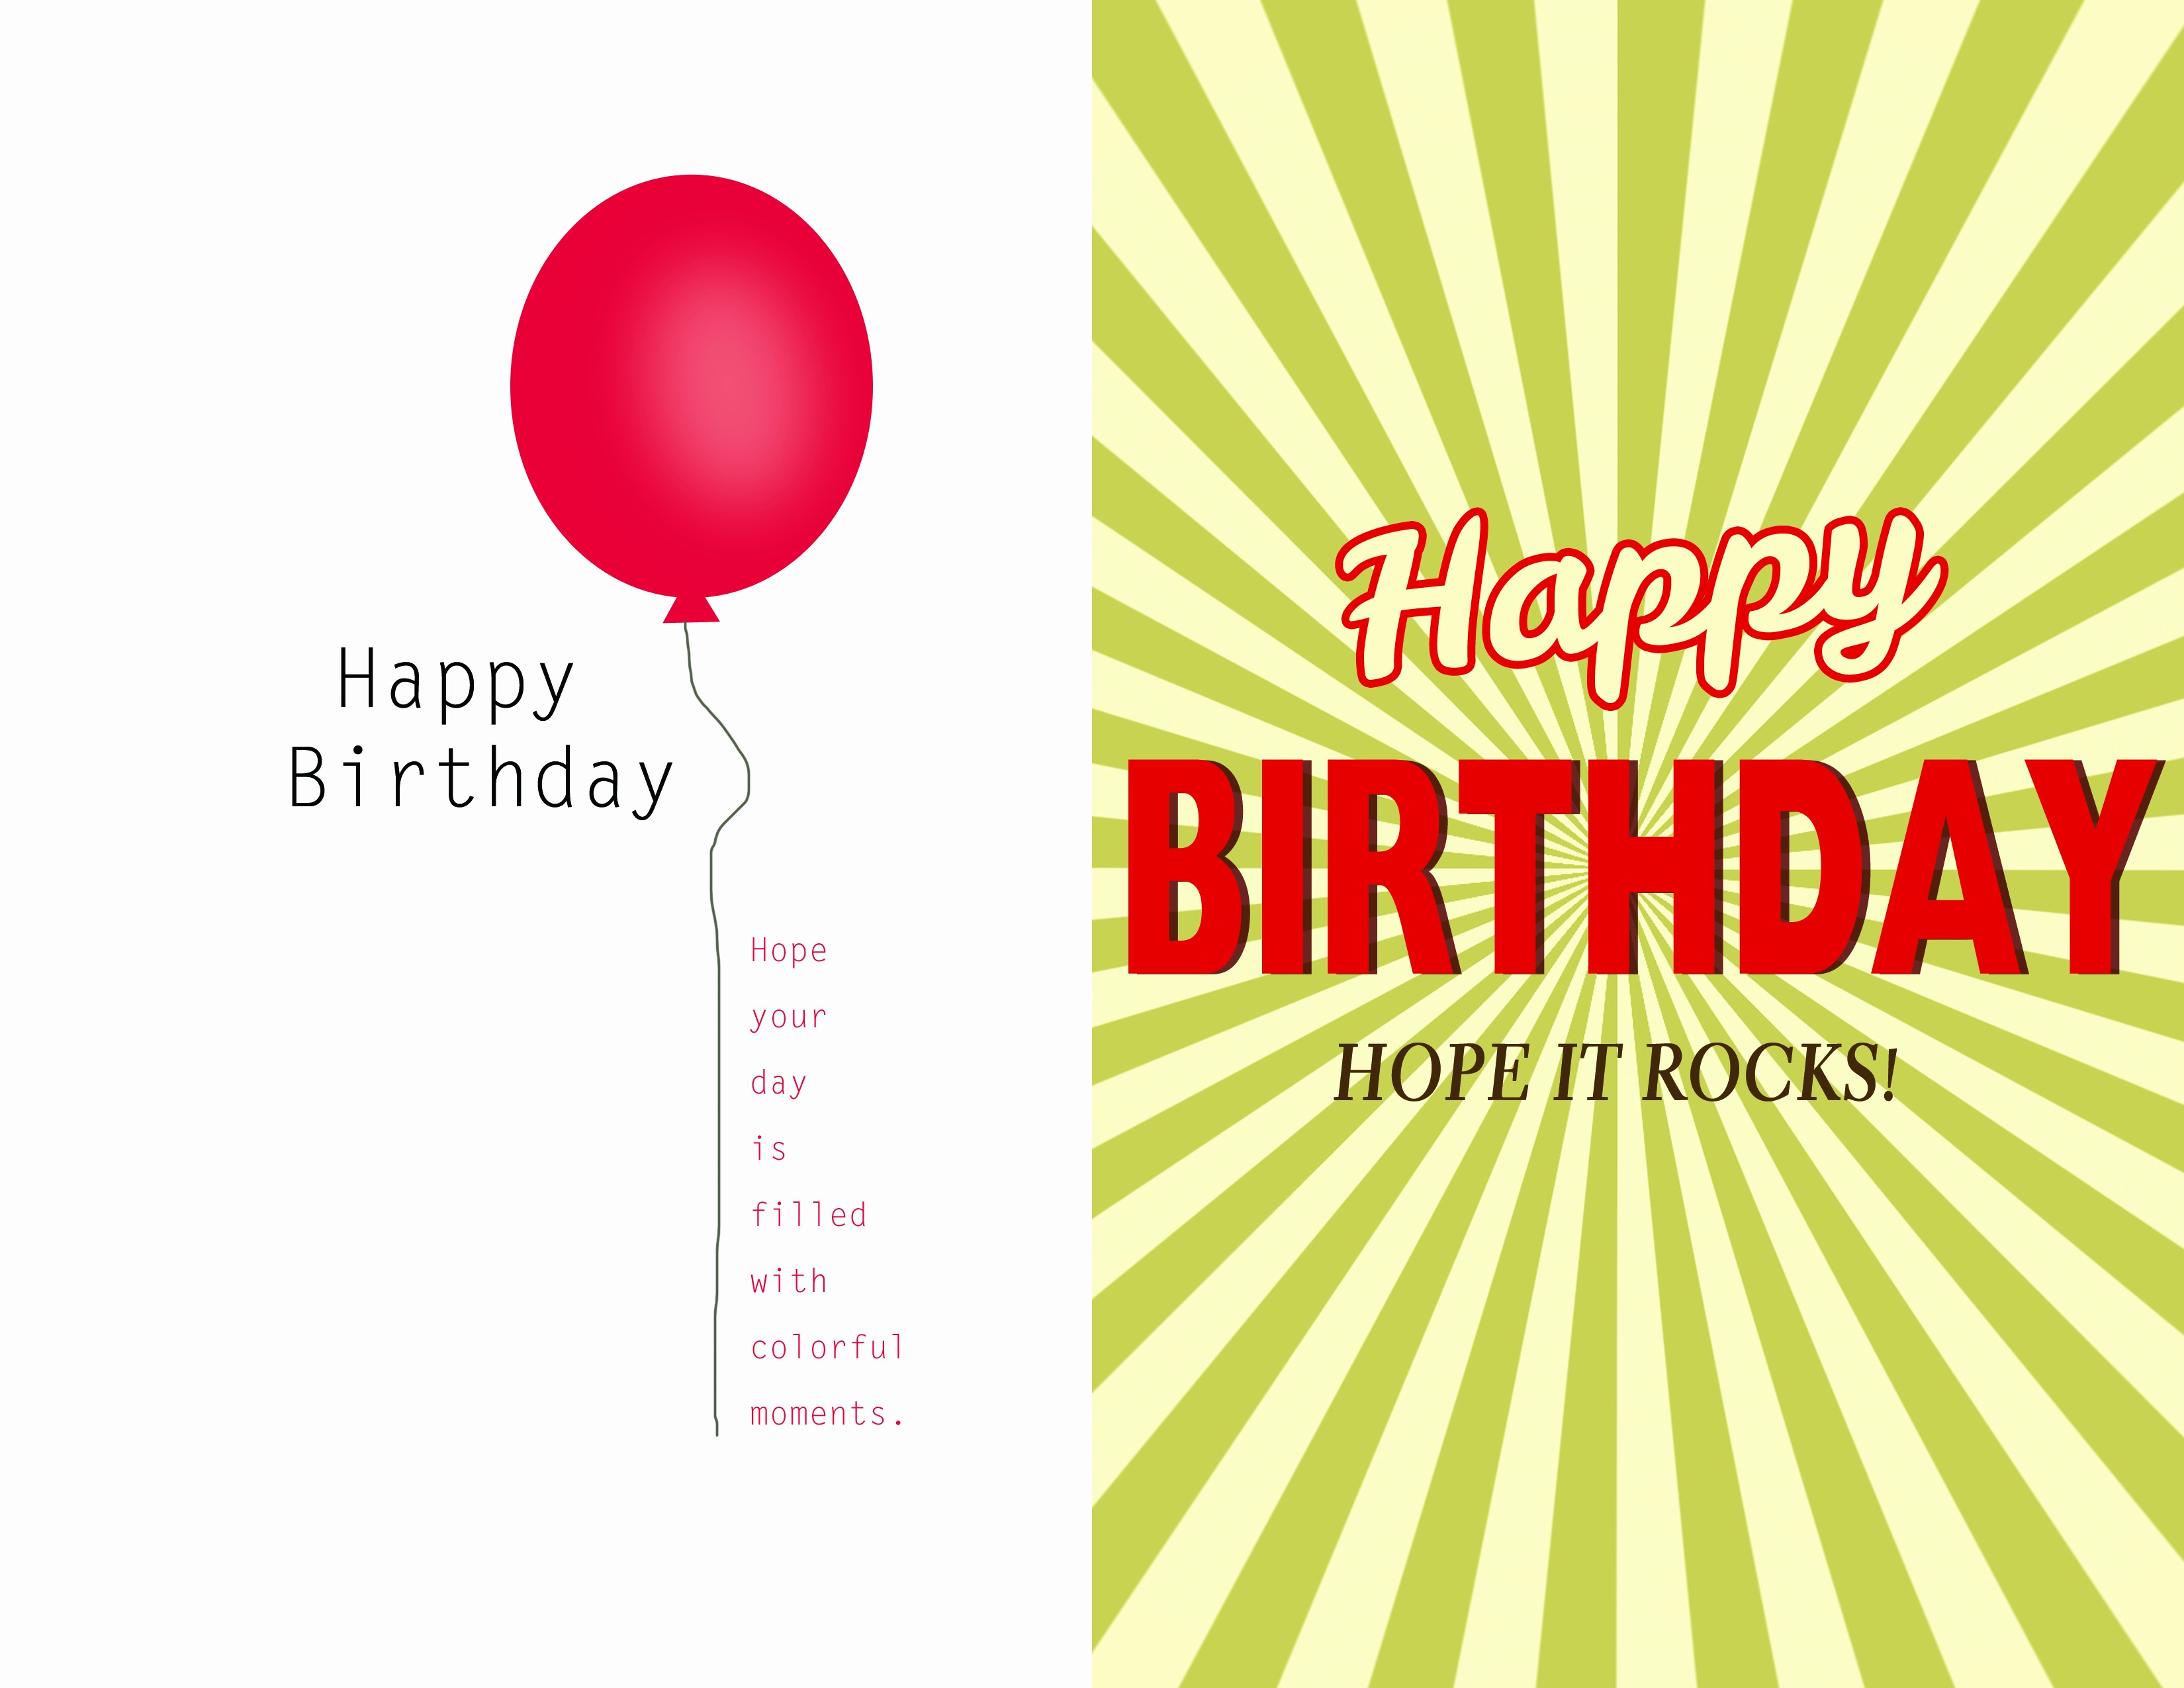 Birthday Card Template for Word Fresh Birthday Card Template